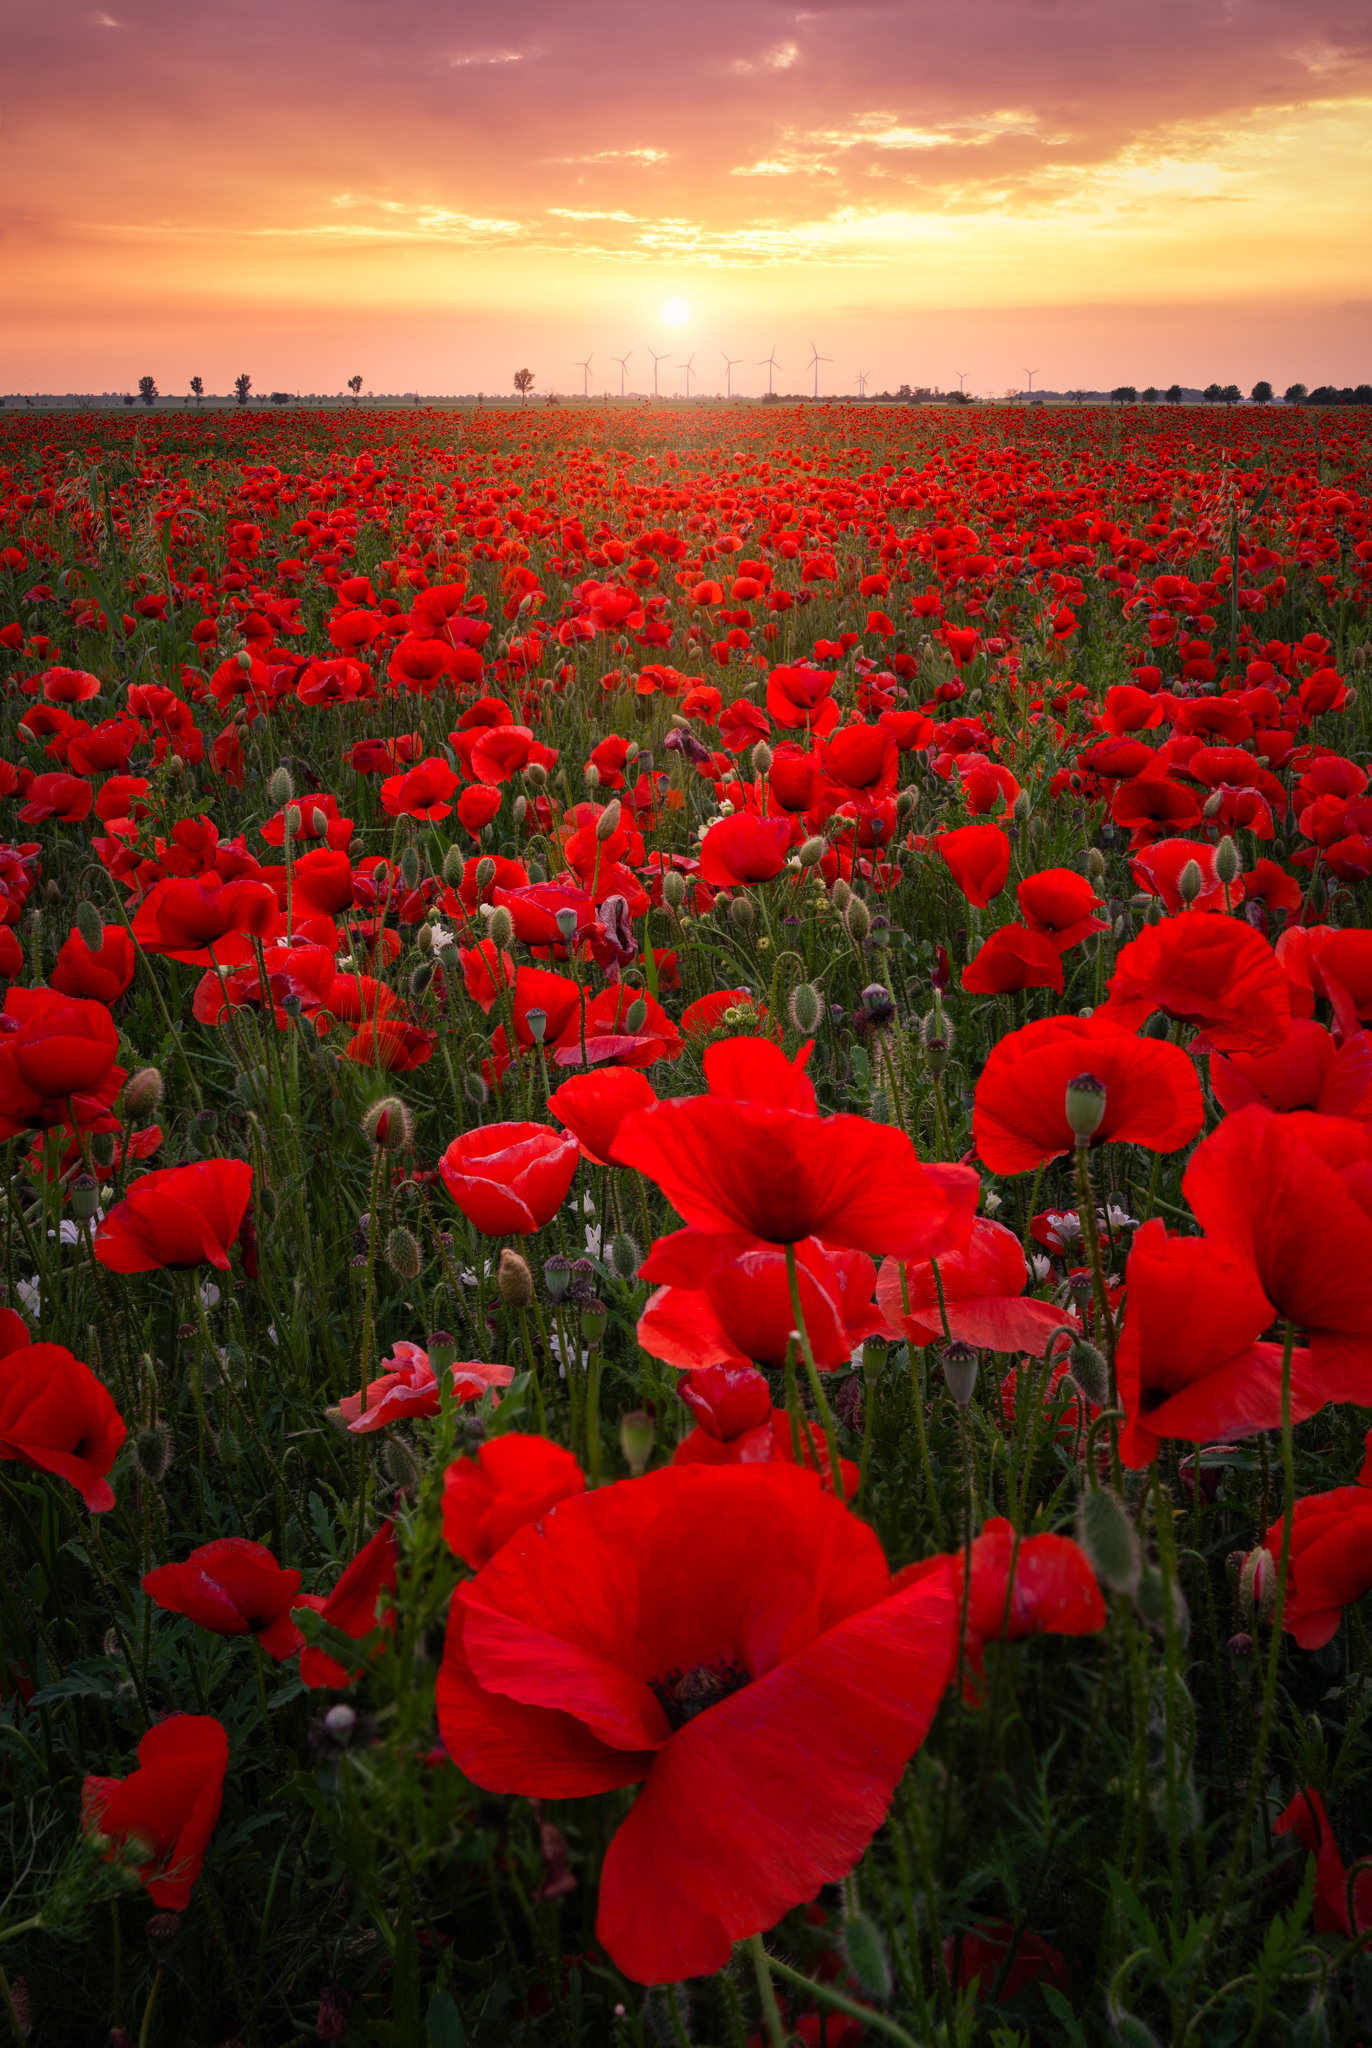 Field of Poppy Flowers in Germany